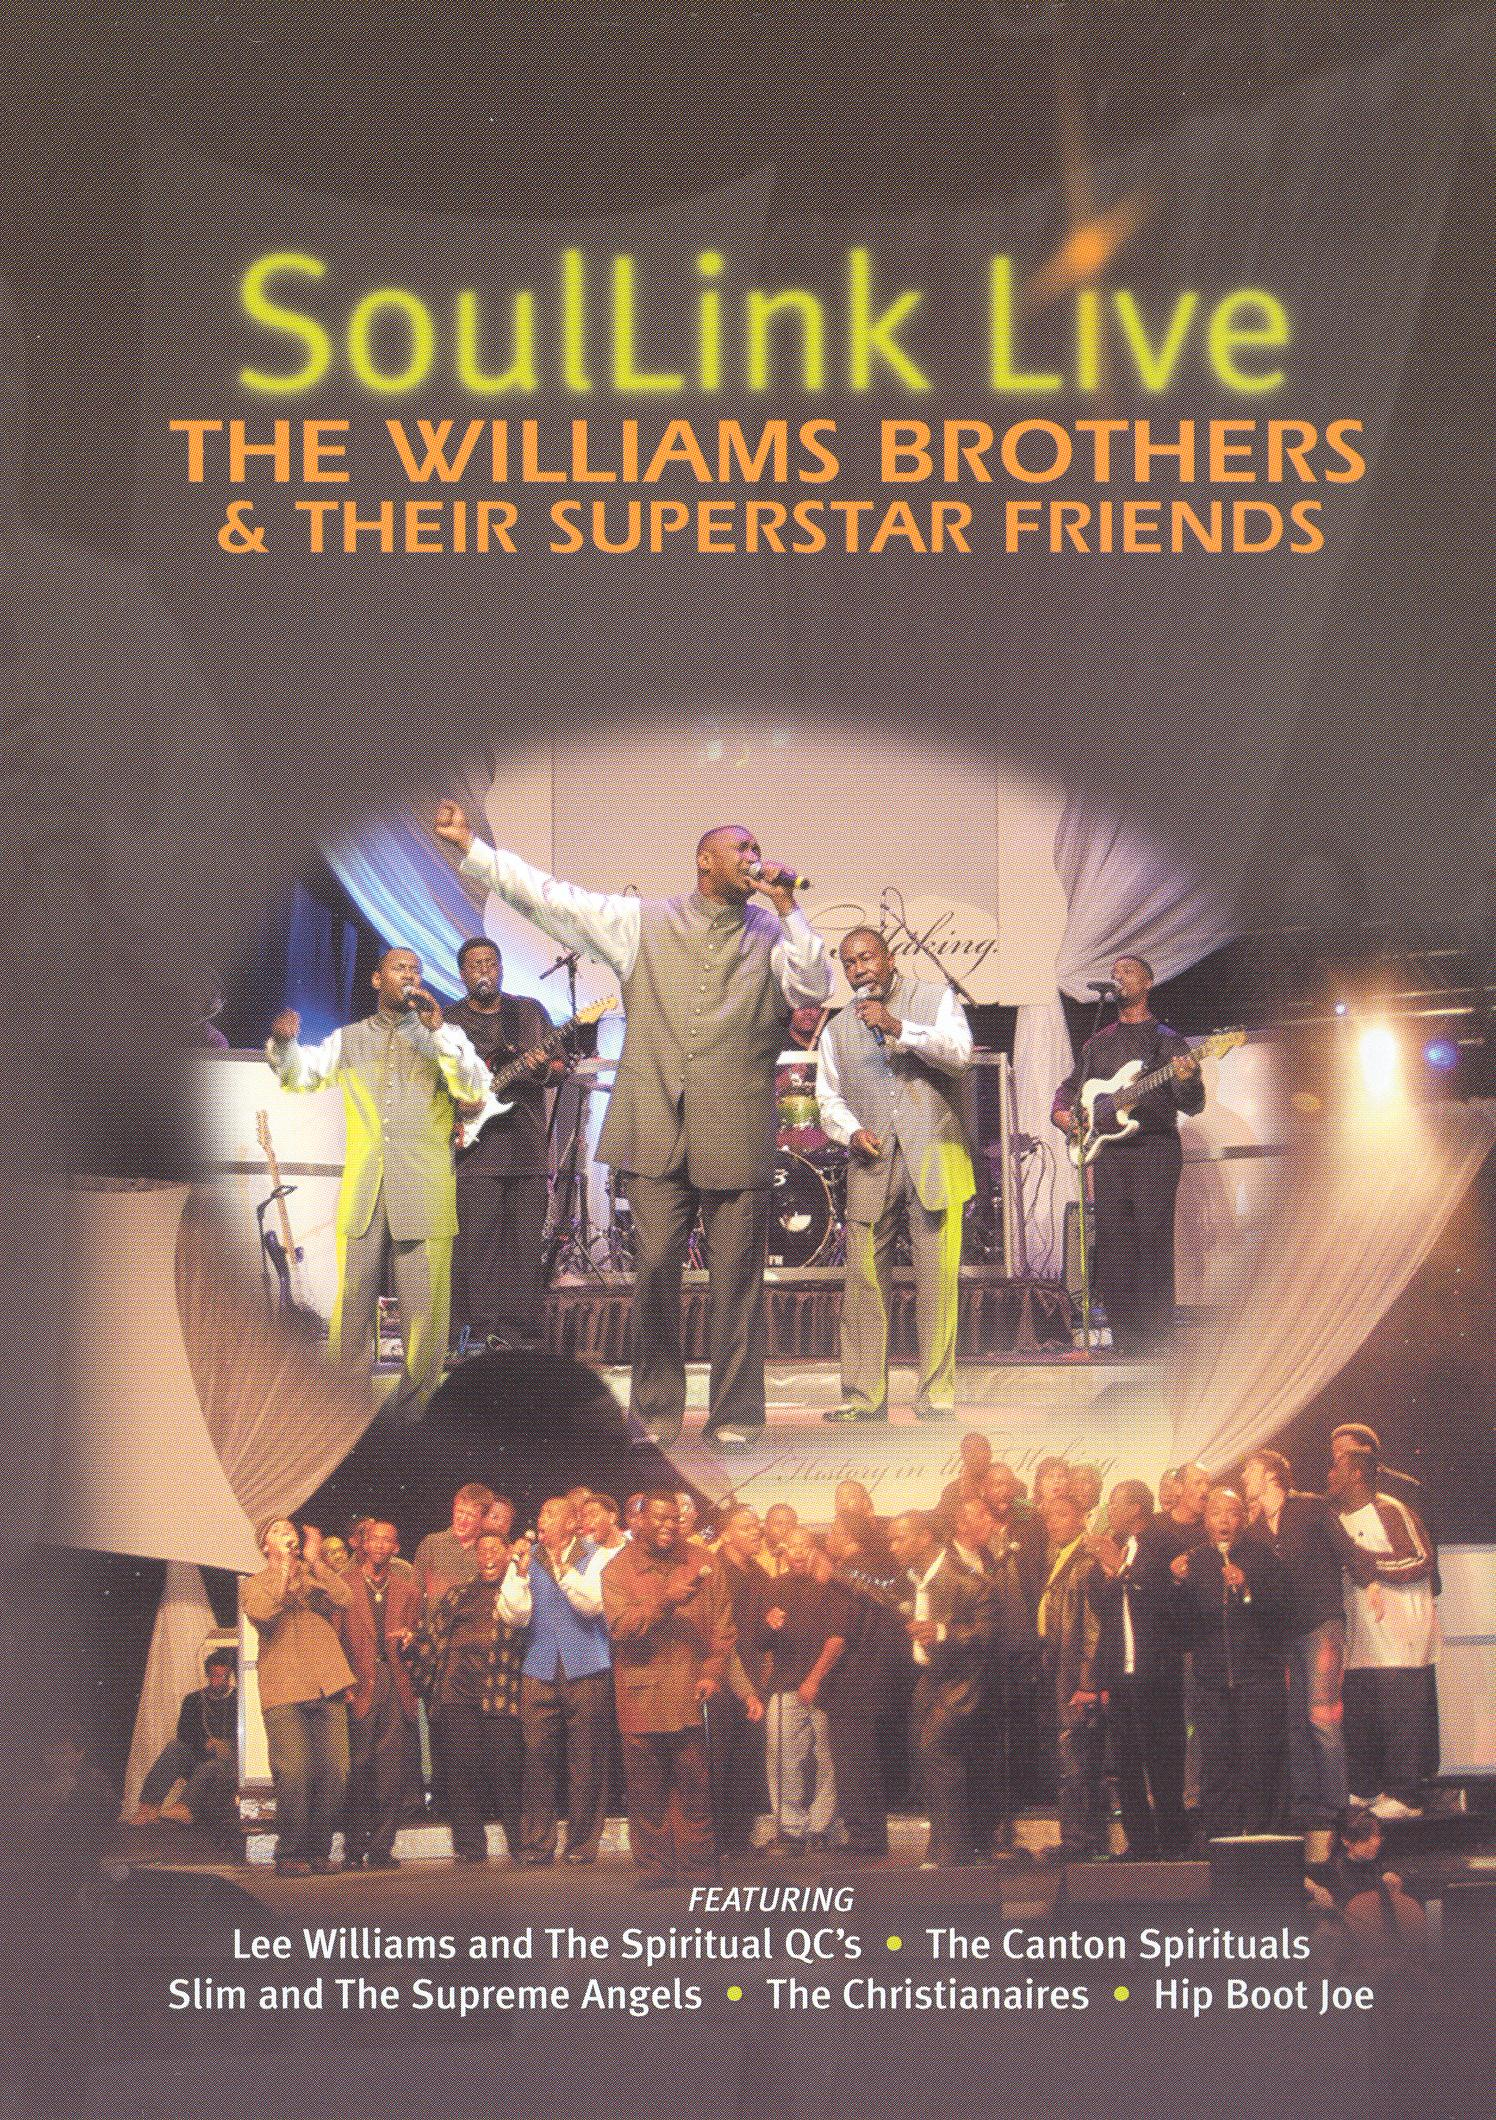 The Williams Brothers and Their Superstar Friends: Soullink Live